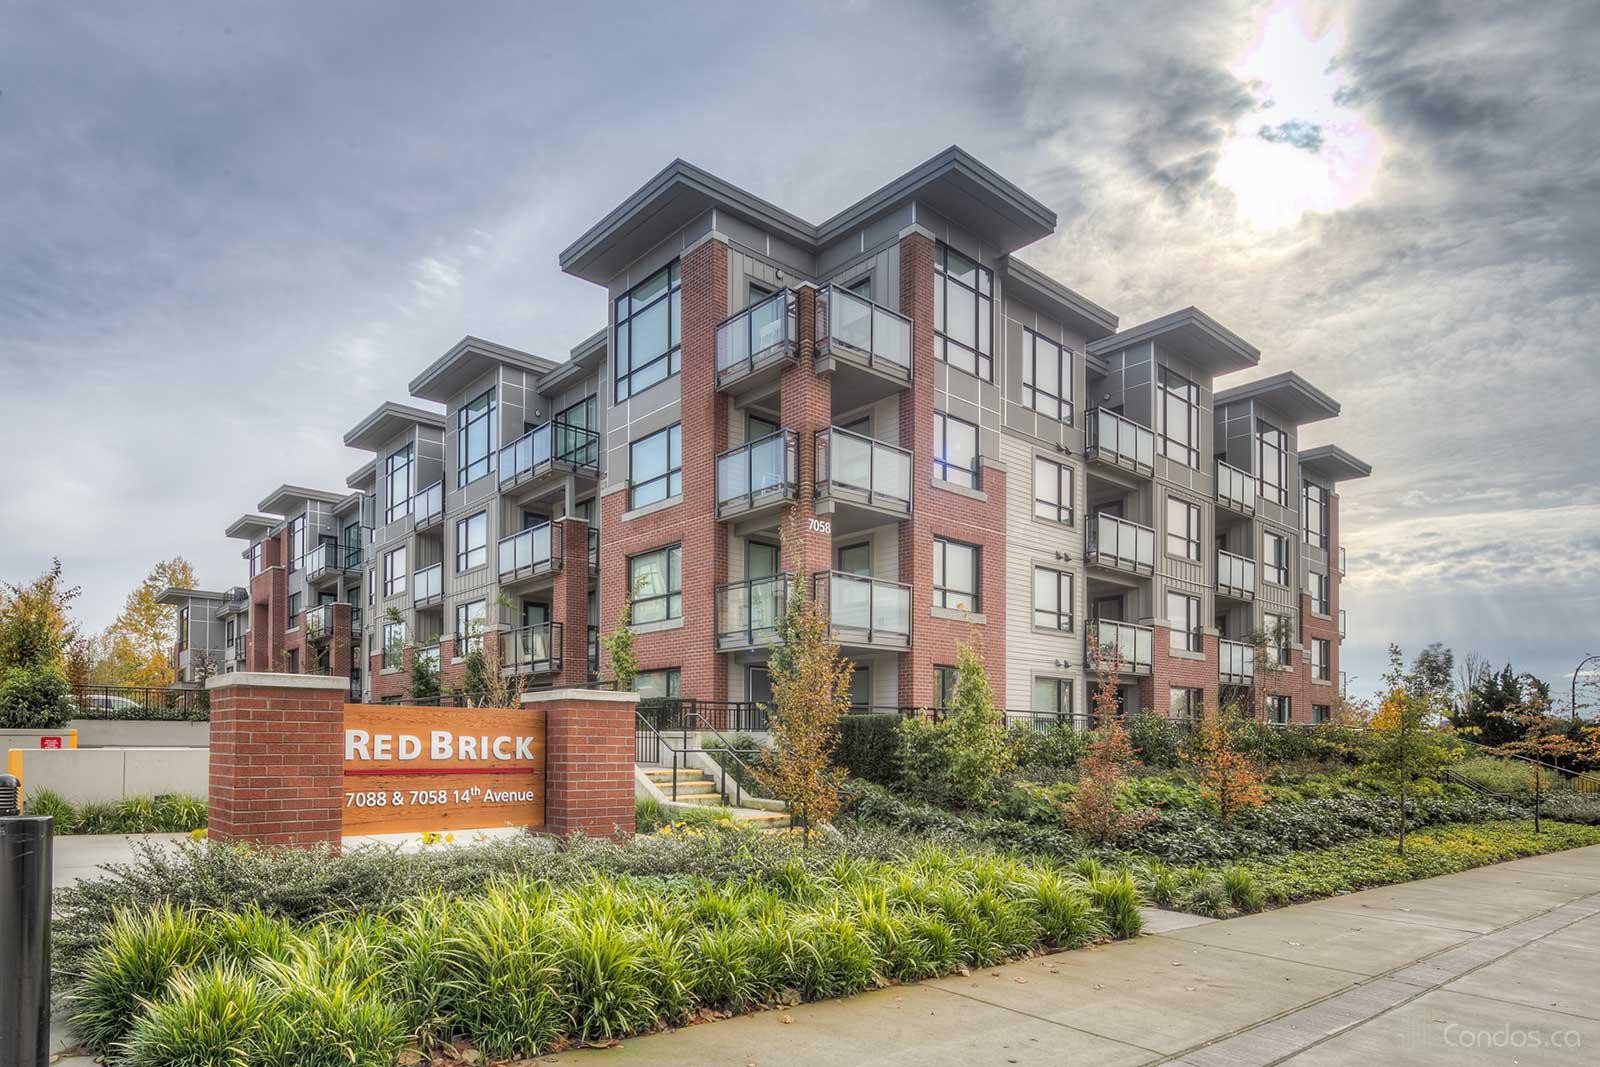 Redbrick at 7008 14th Ave, Burnaby 1